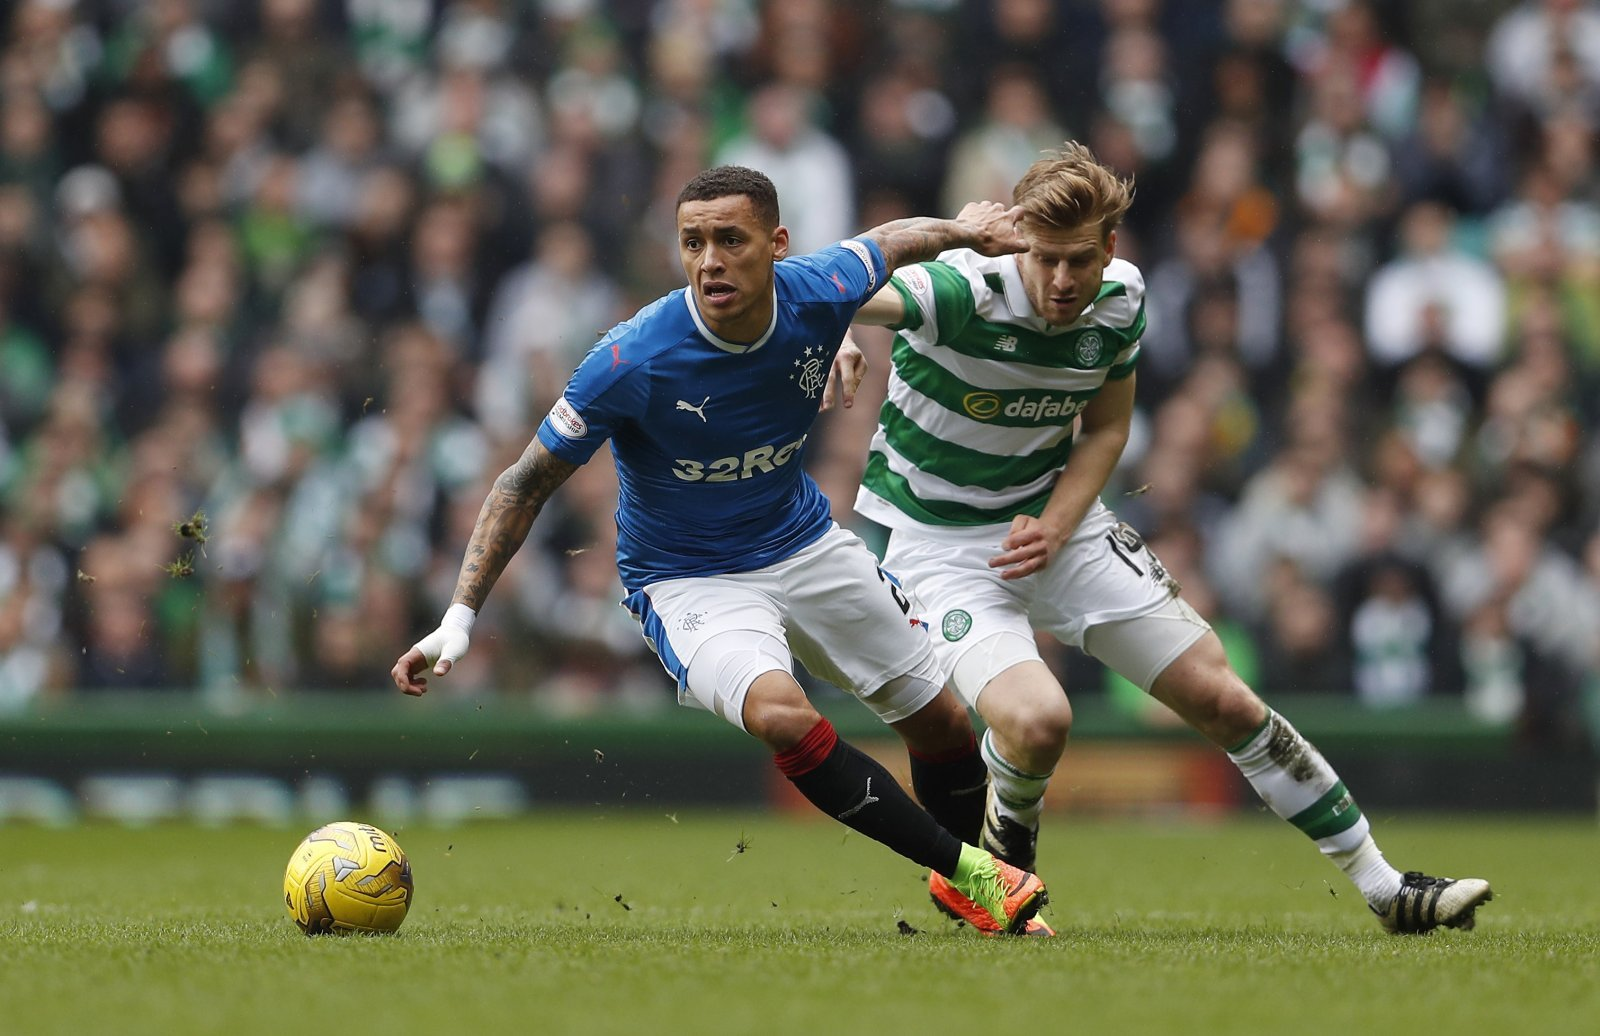 Retaining James Tavernier beyond the English deadline has won the transfer window for Rangers